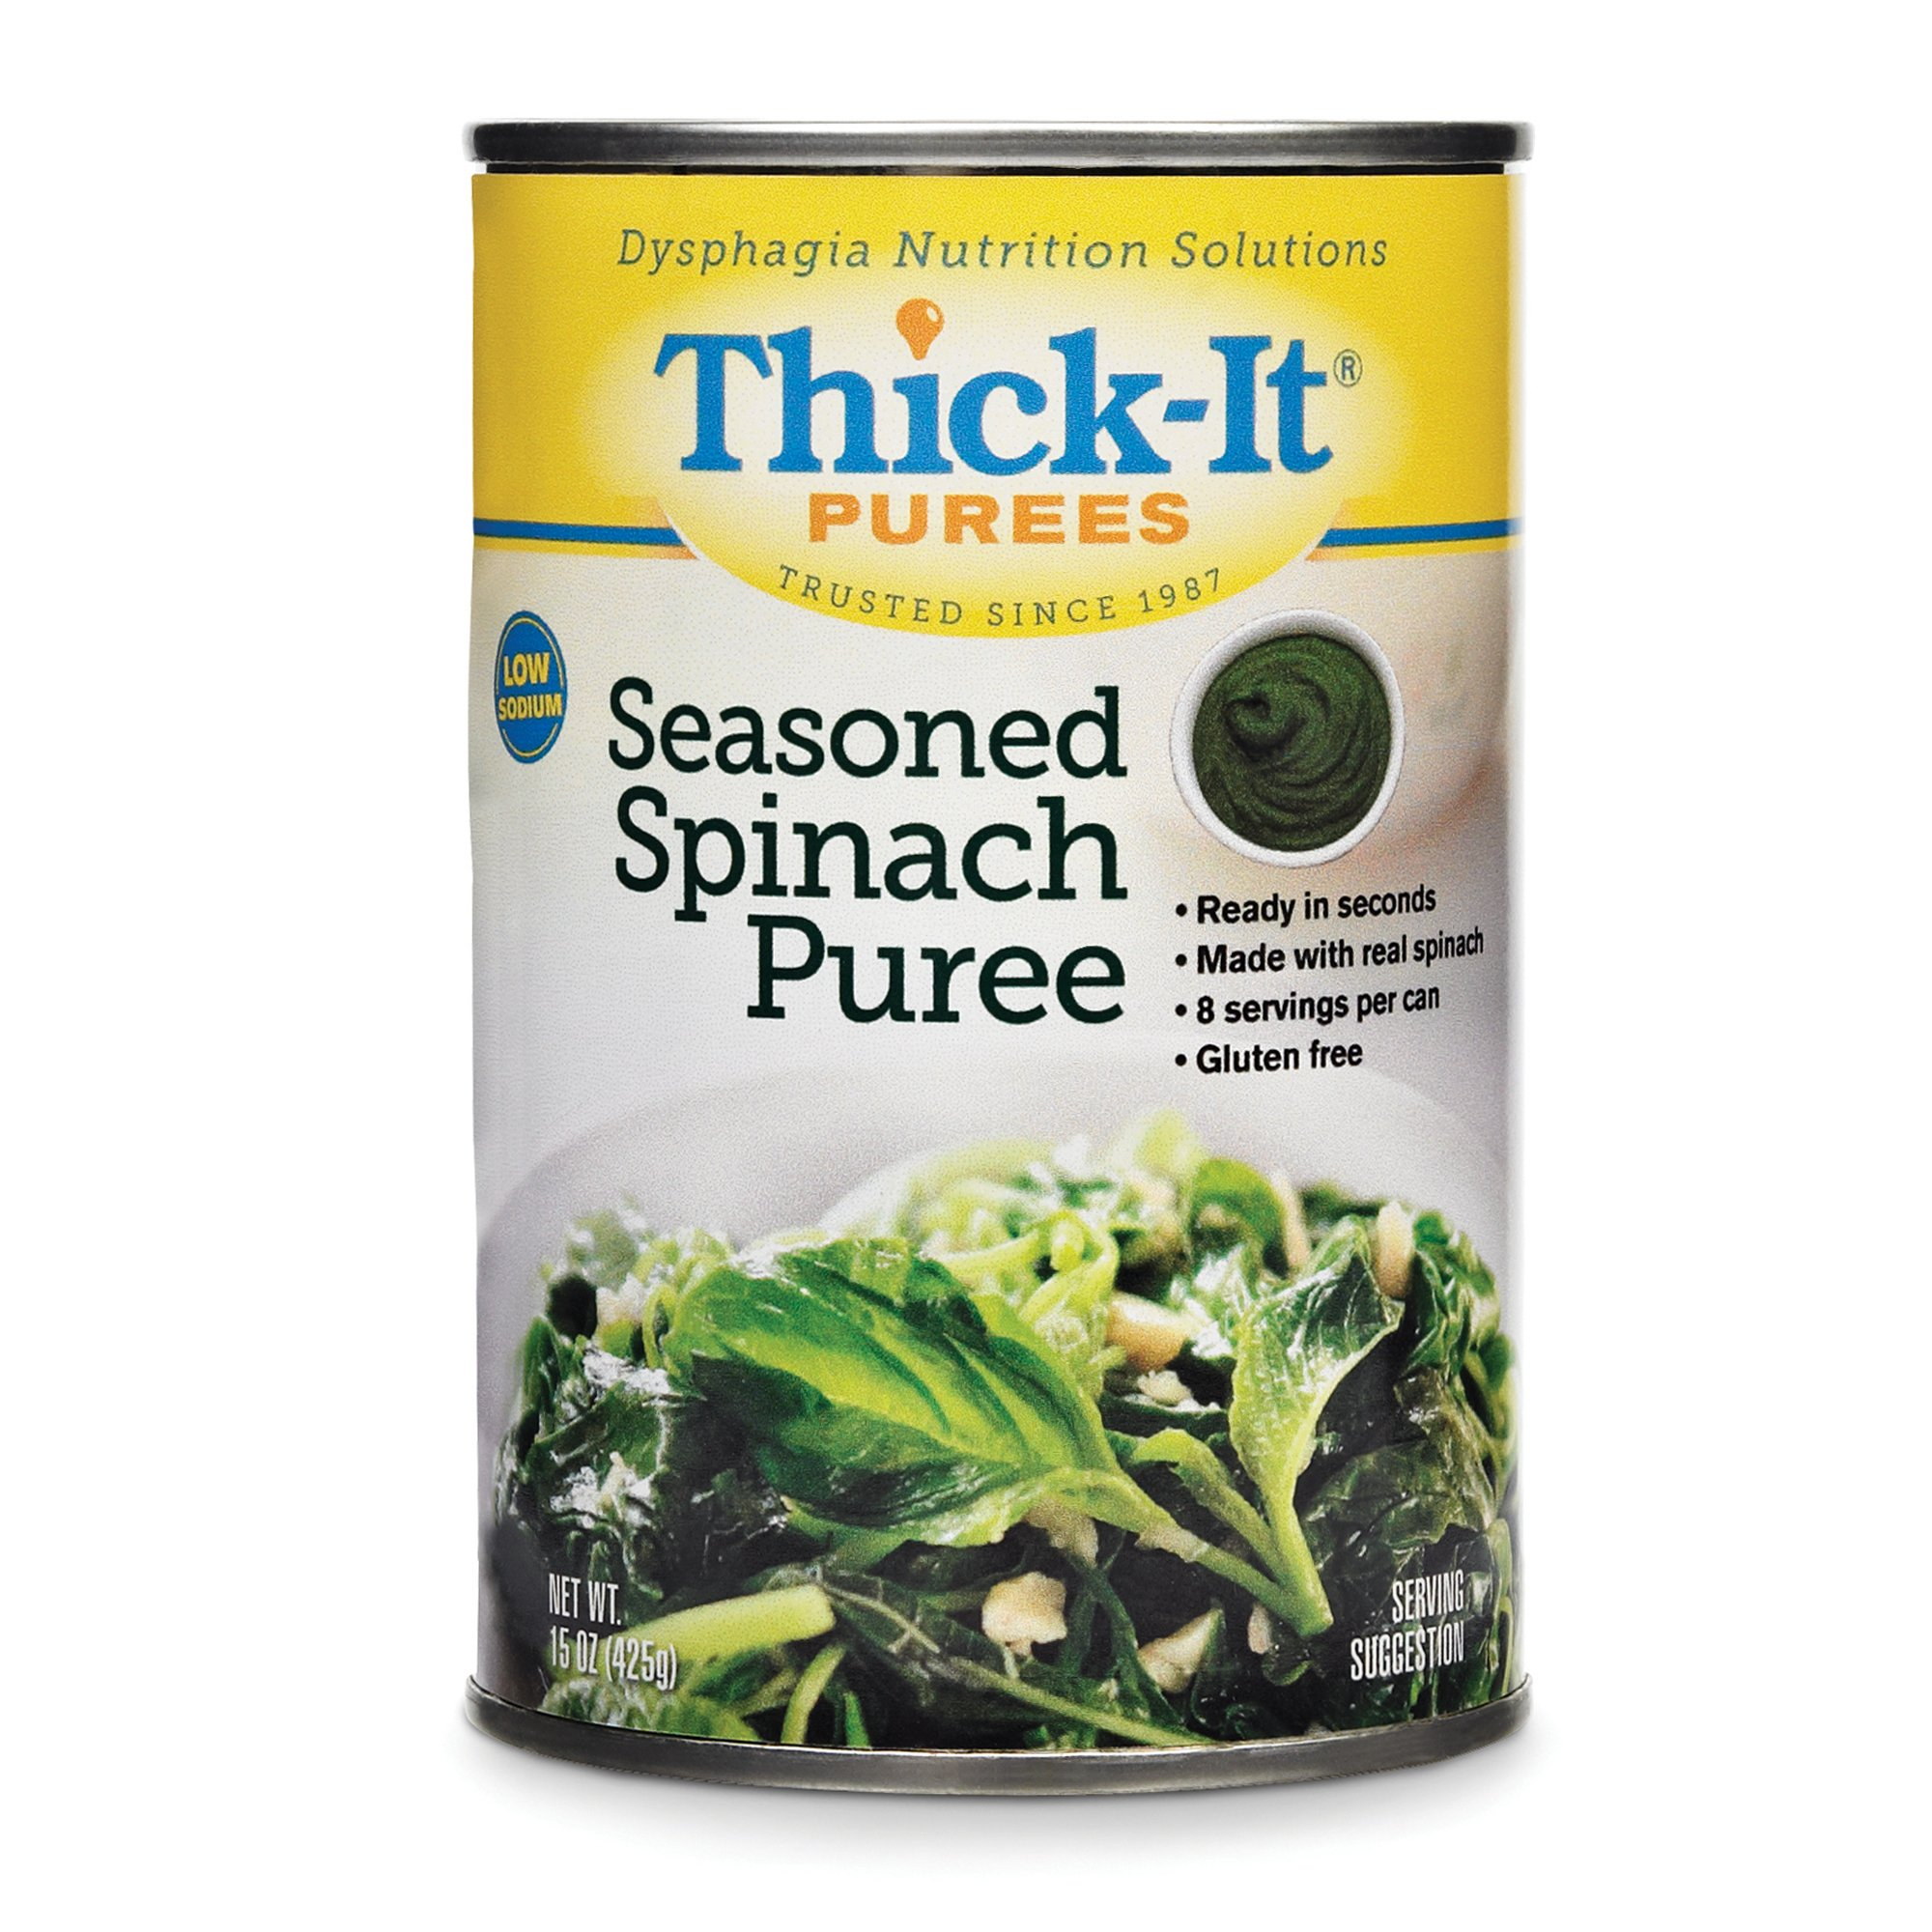 Thick-It Purees Seasoned Spinach Puree, 15 oz., H320-F8800, 1 Each